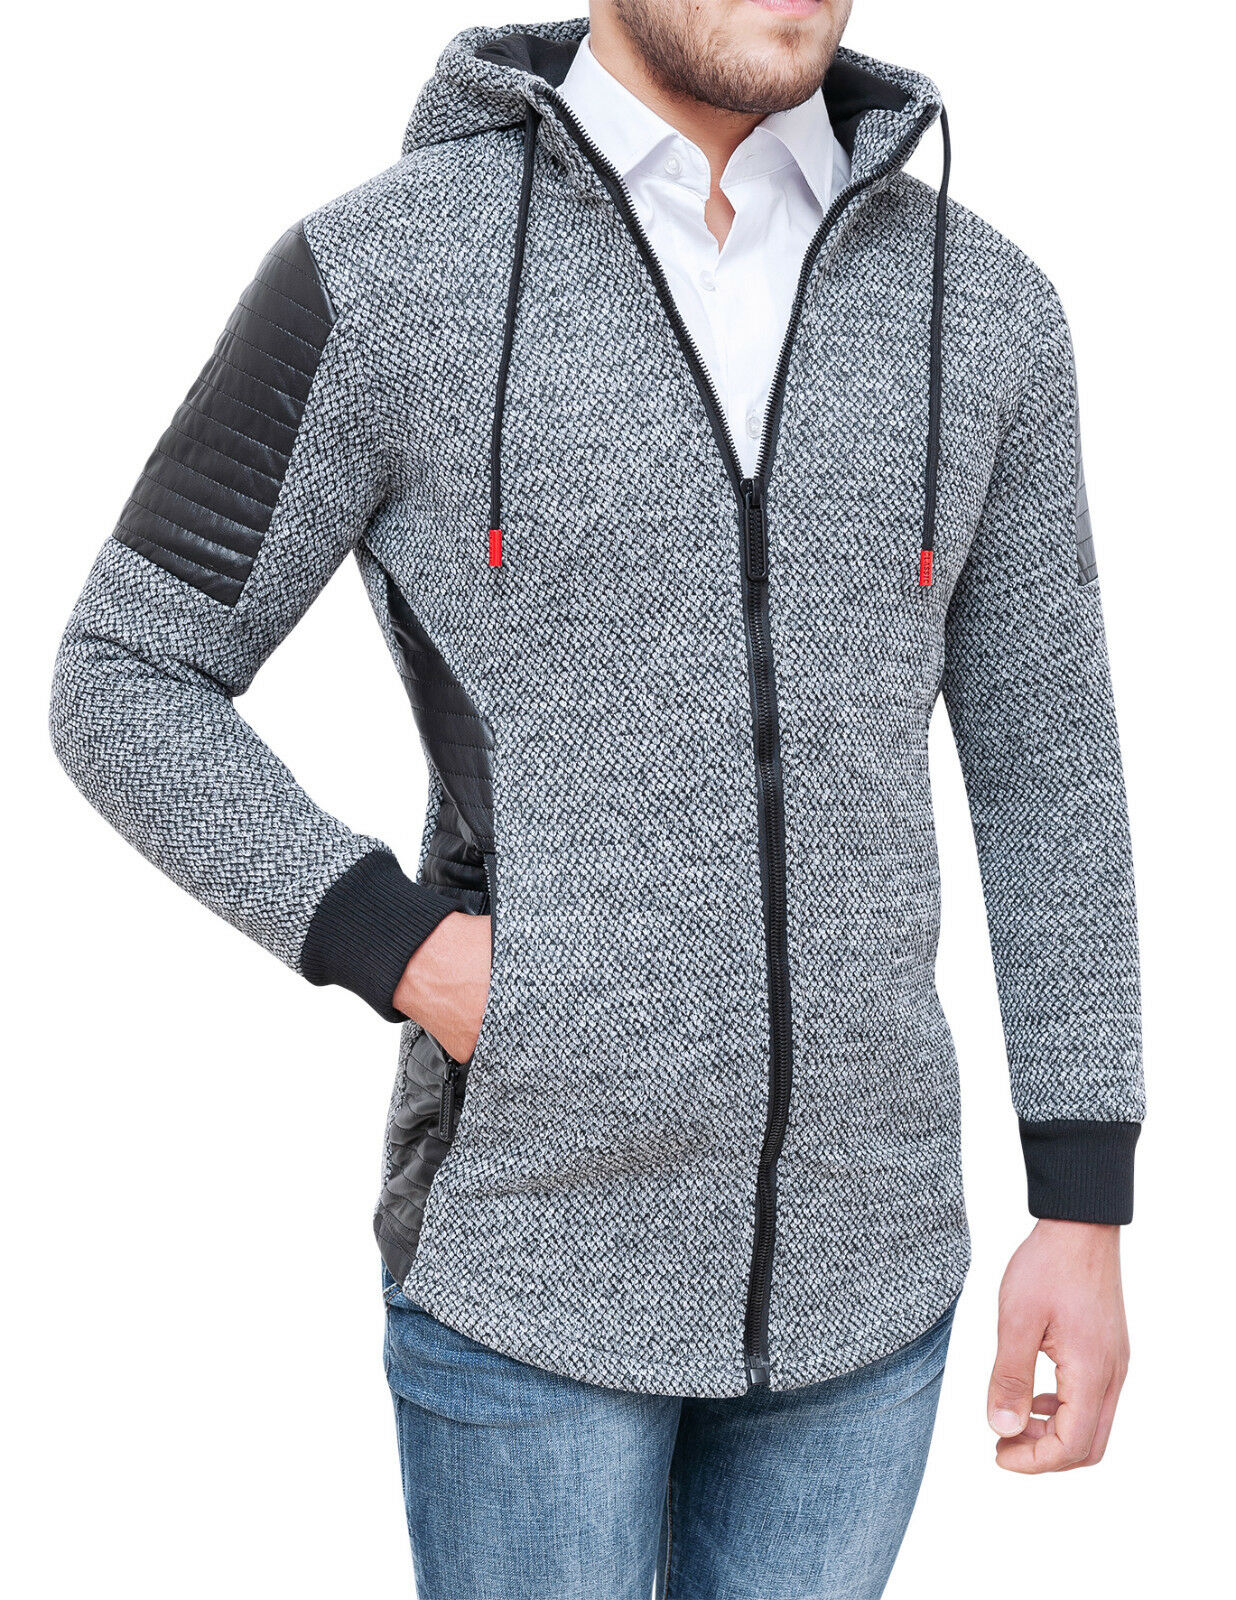 CARDIGAN VESTE HOMME TWEED grey CASUAL HIVERNAL VESTE À CAPUCHE